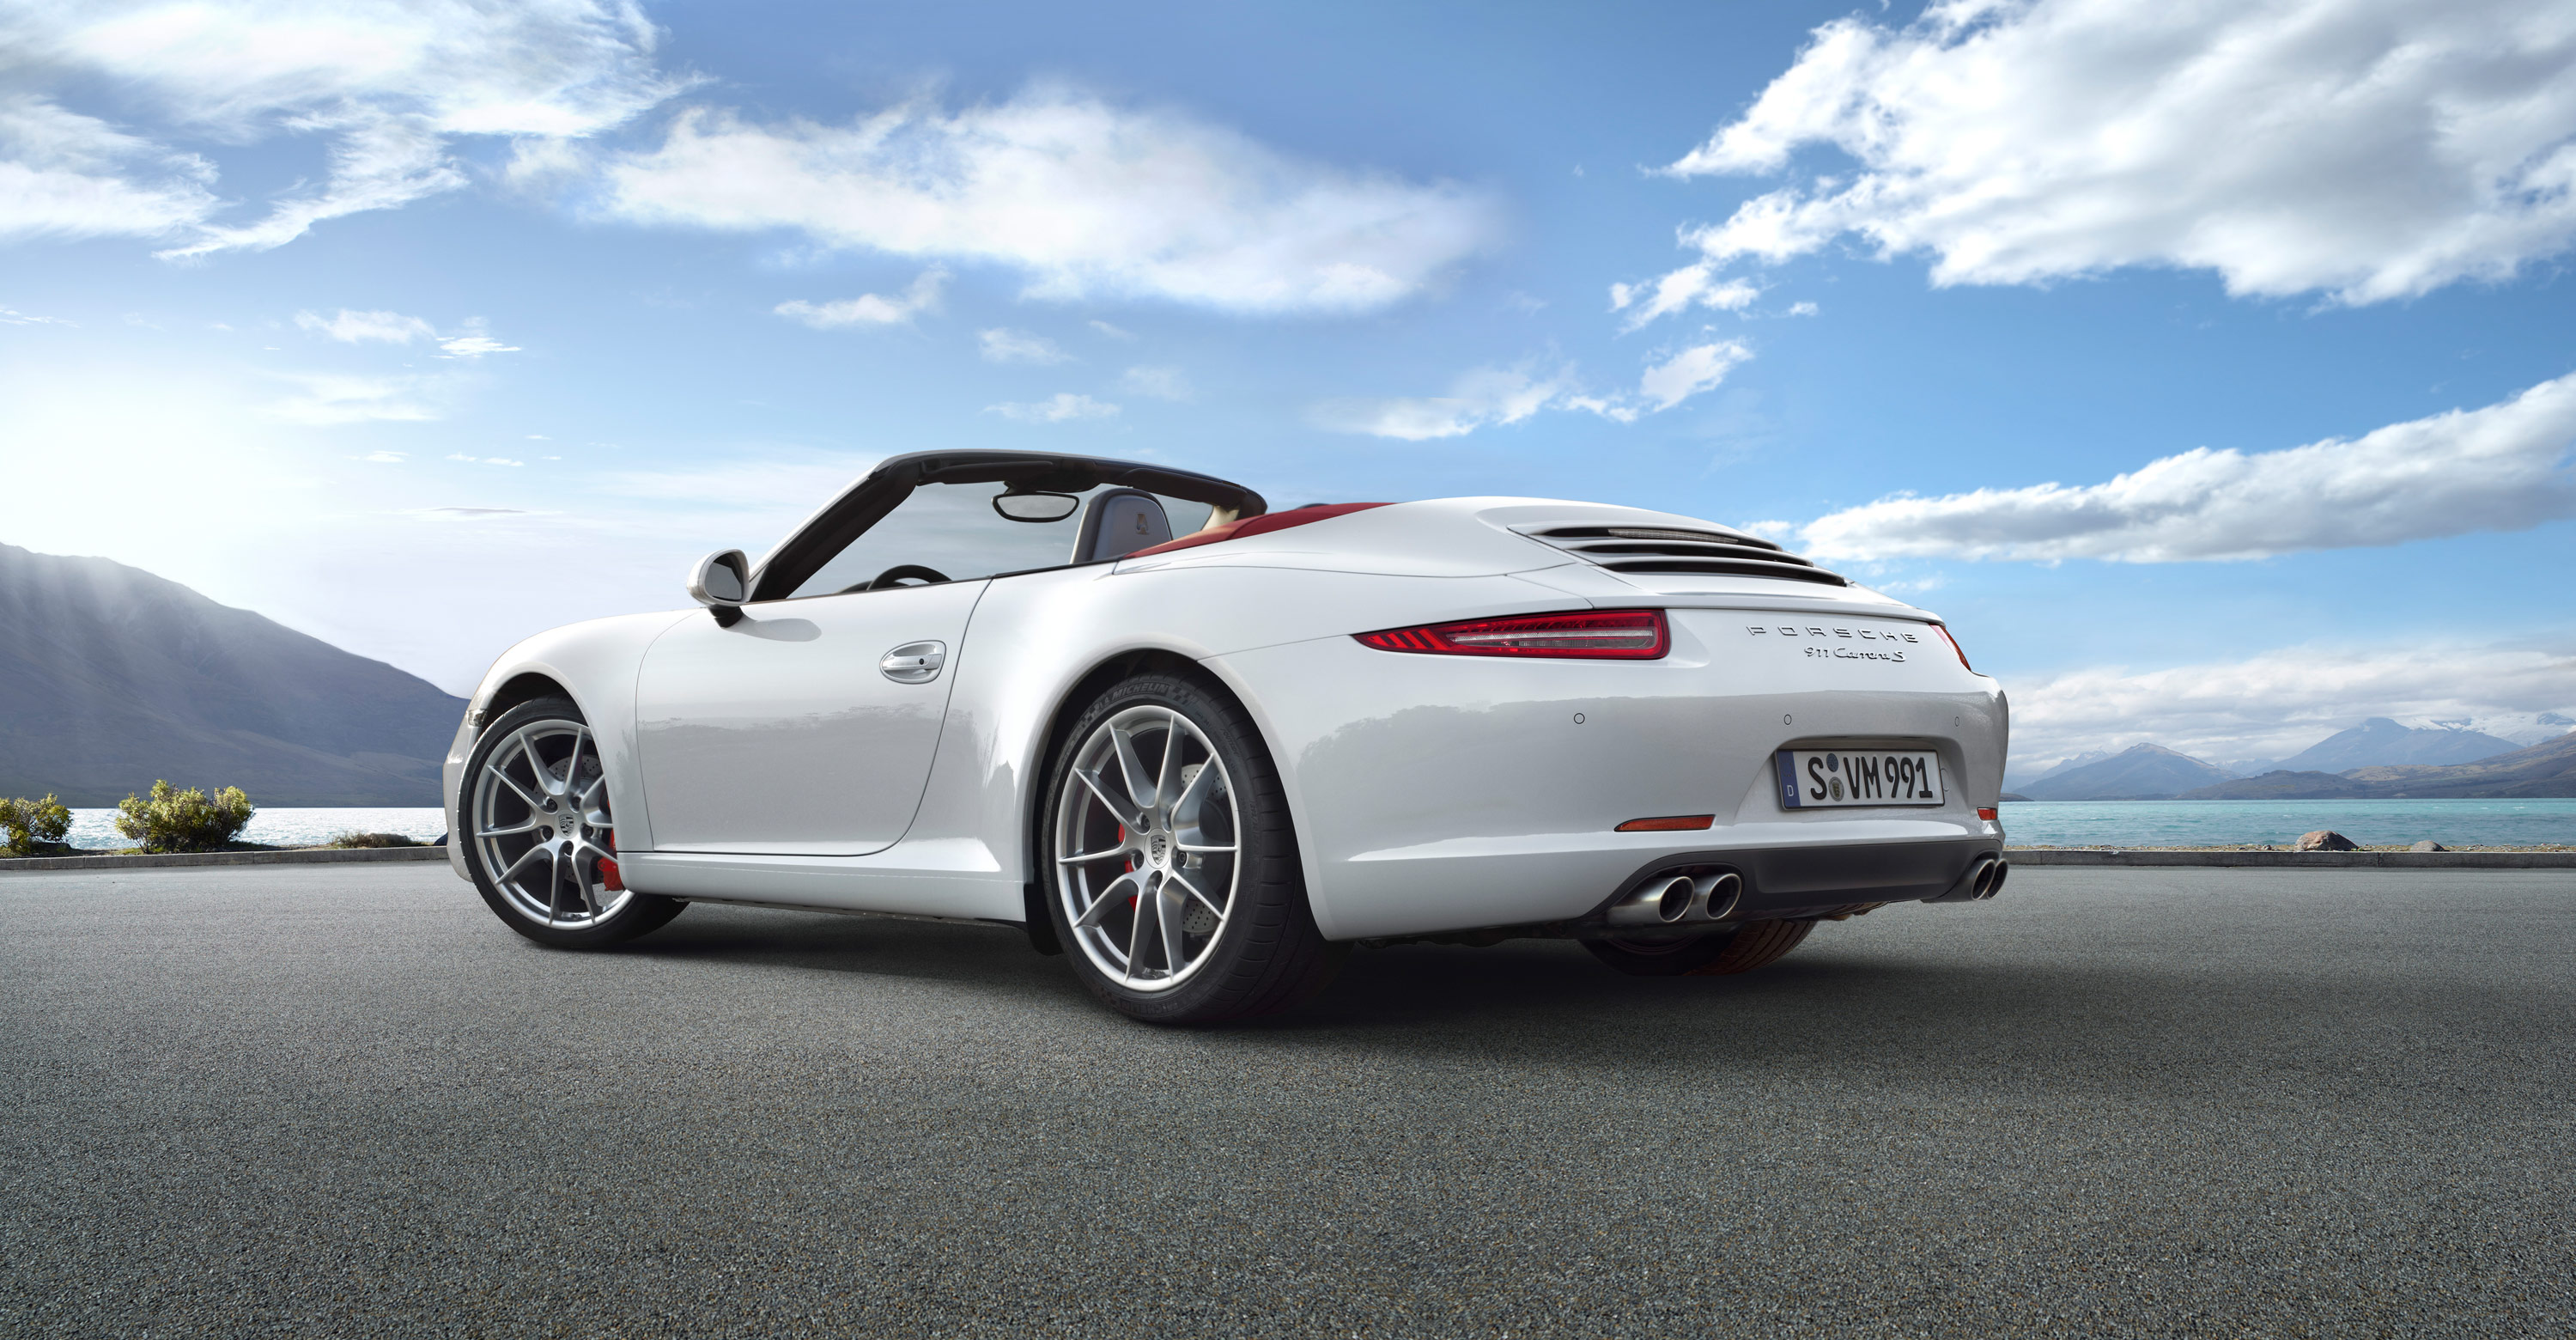 2012 white porsche 911 carrera s cabriolet wallpapers. Black Bedroom Furniture Sets. Home Design Ideas